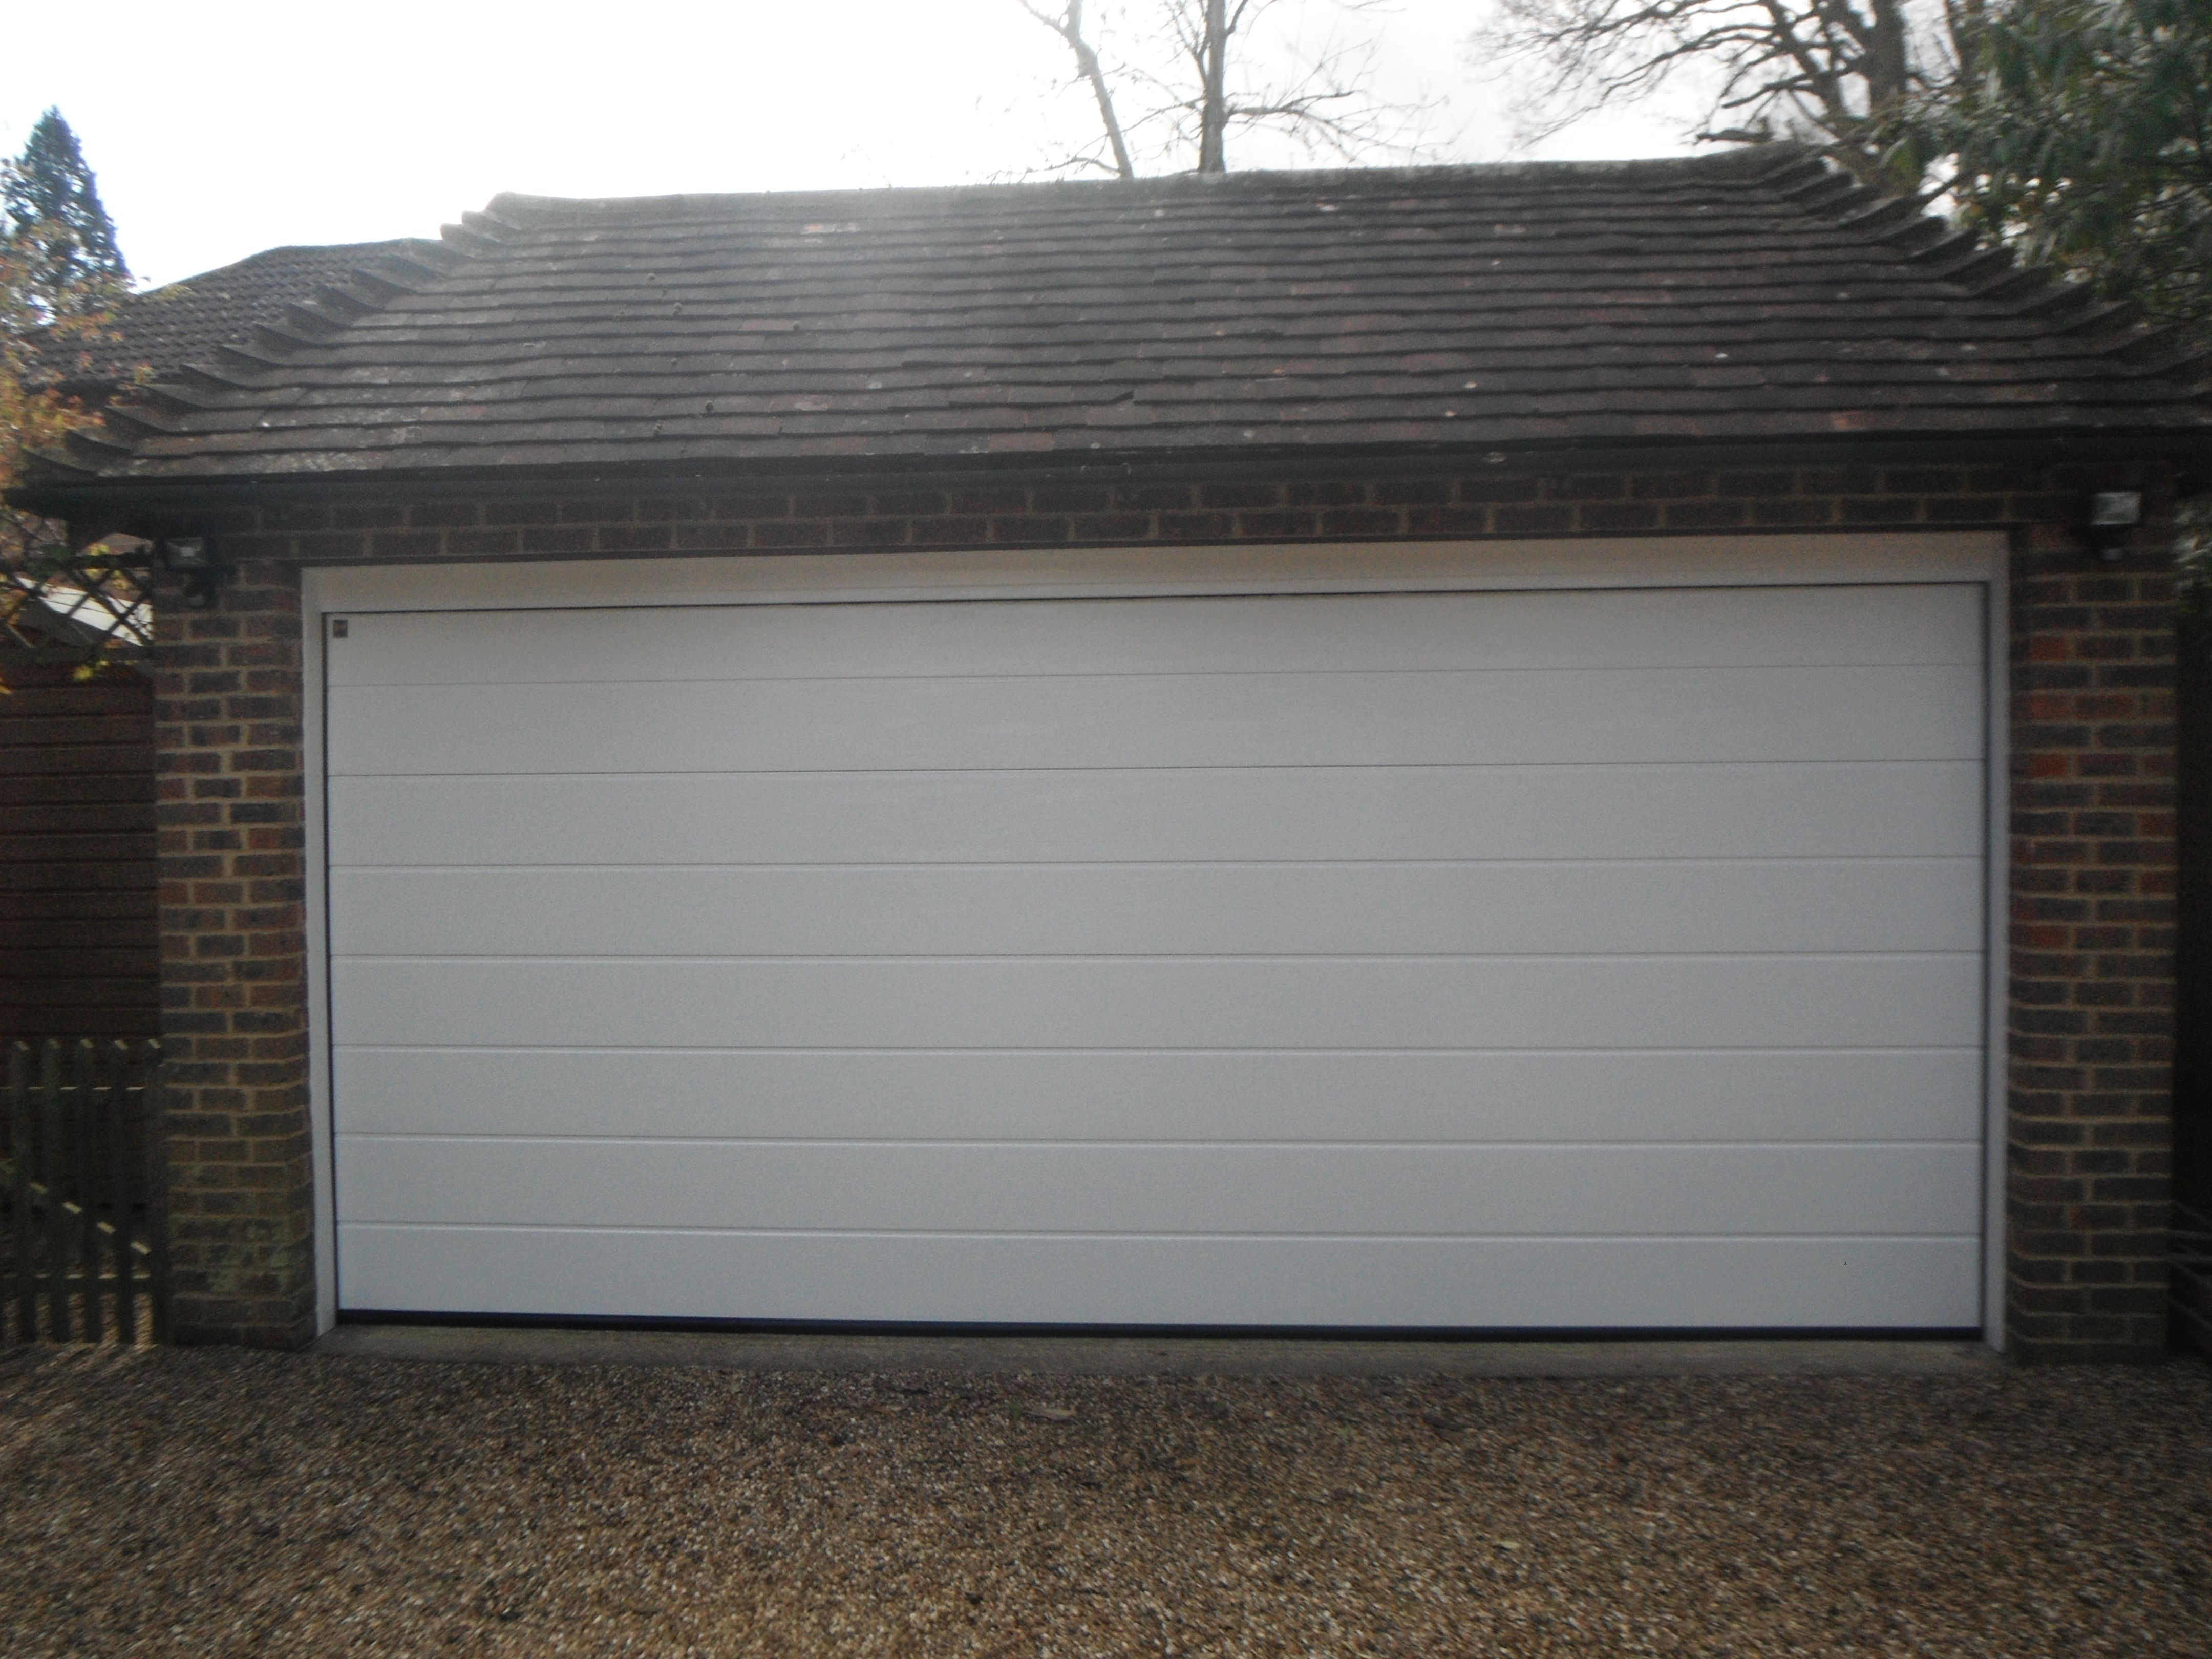 Hormann White MRibbed Woodgrain Sectional Garage Door